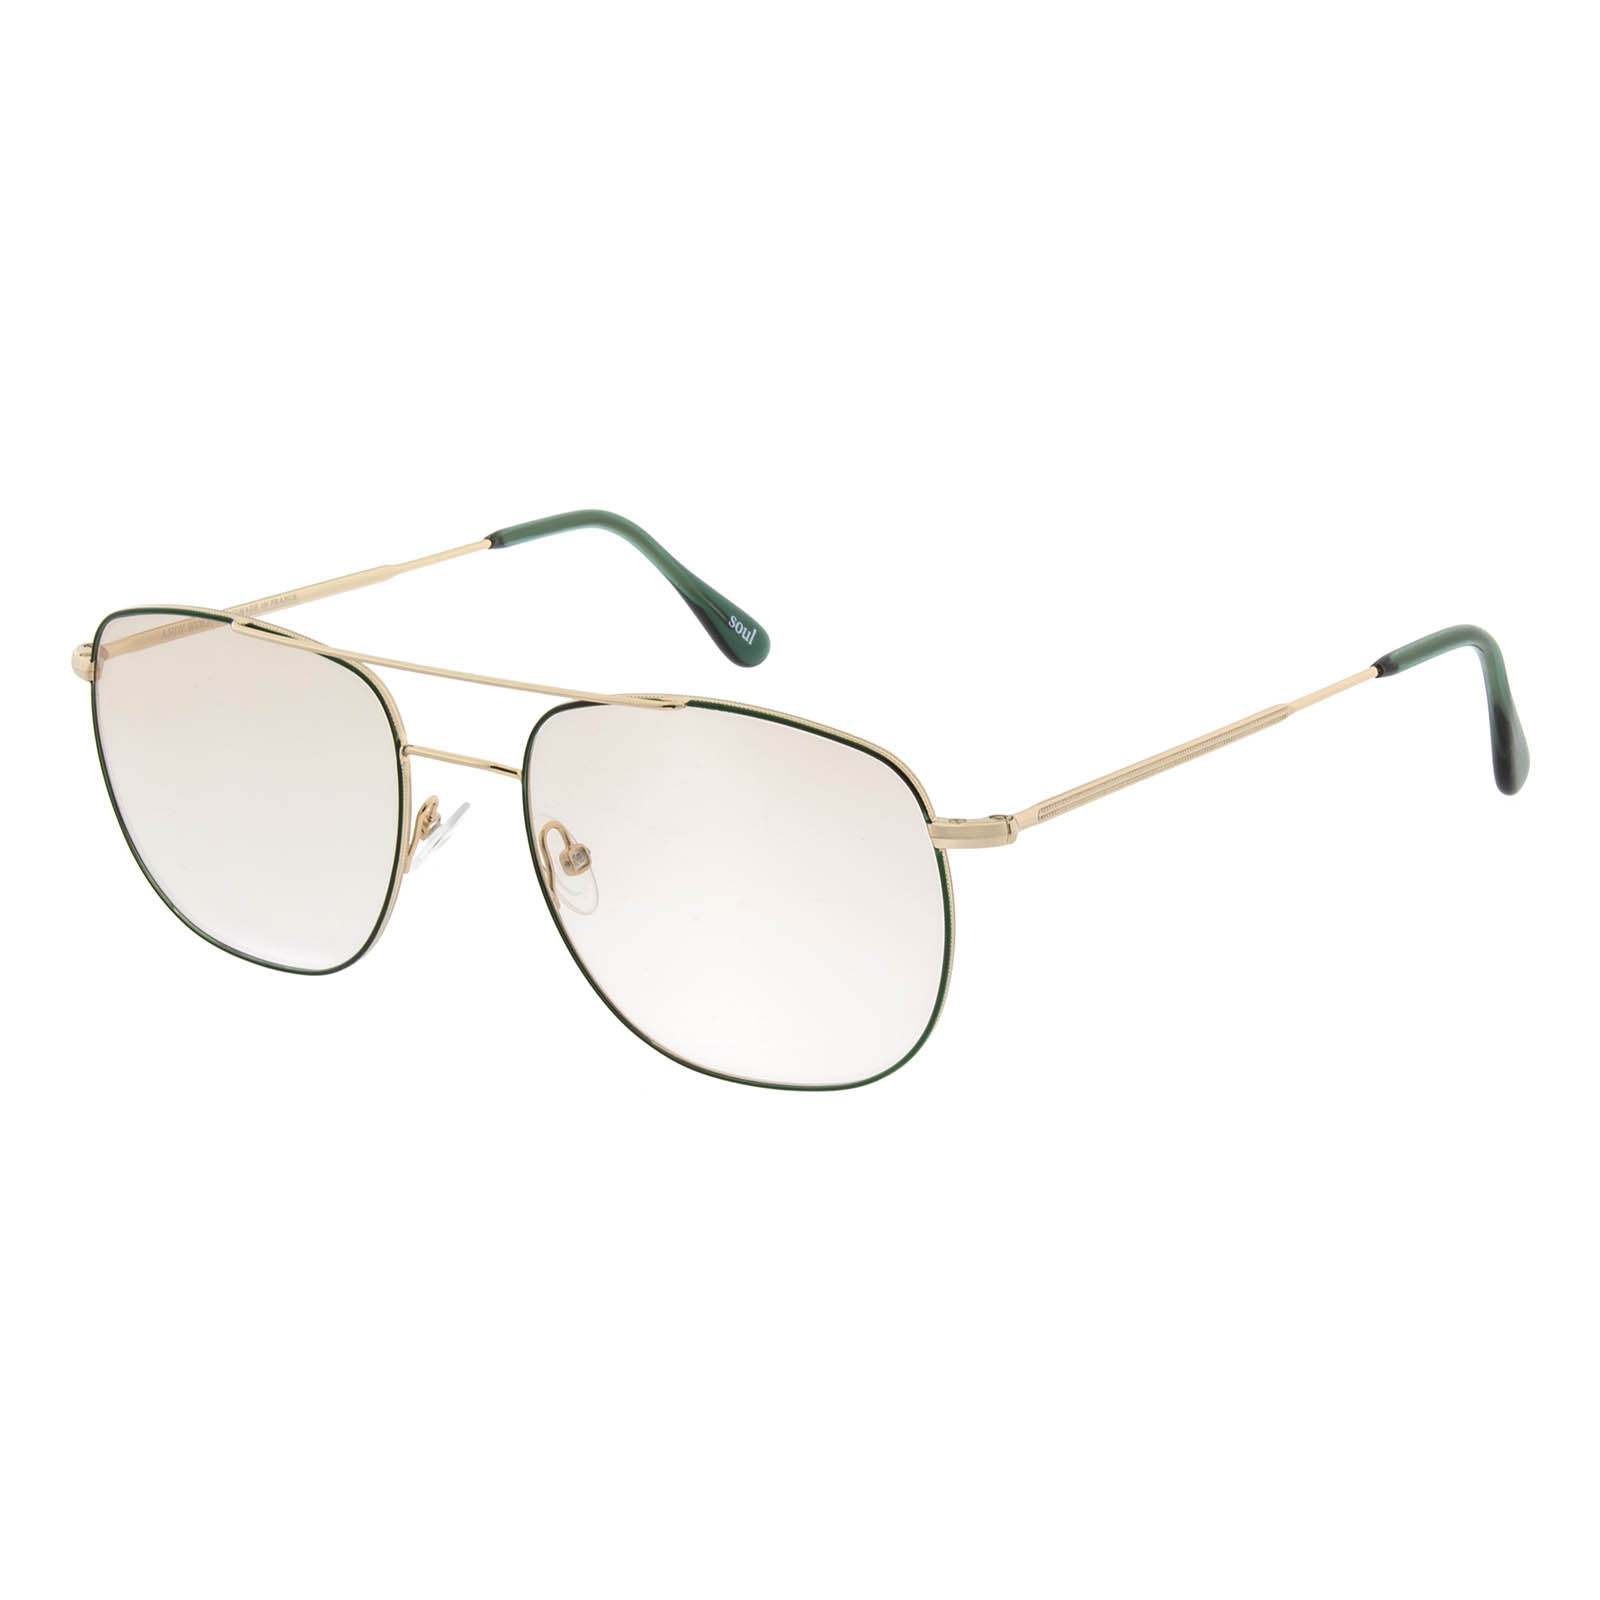 ANDY WOLF EYEWEAR_4741_E_side